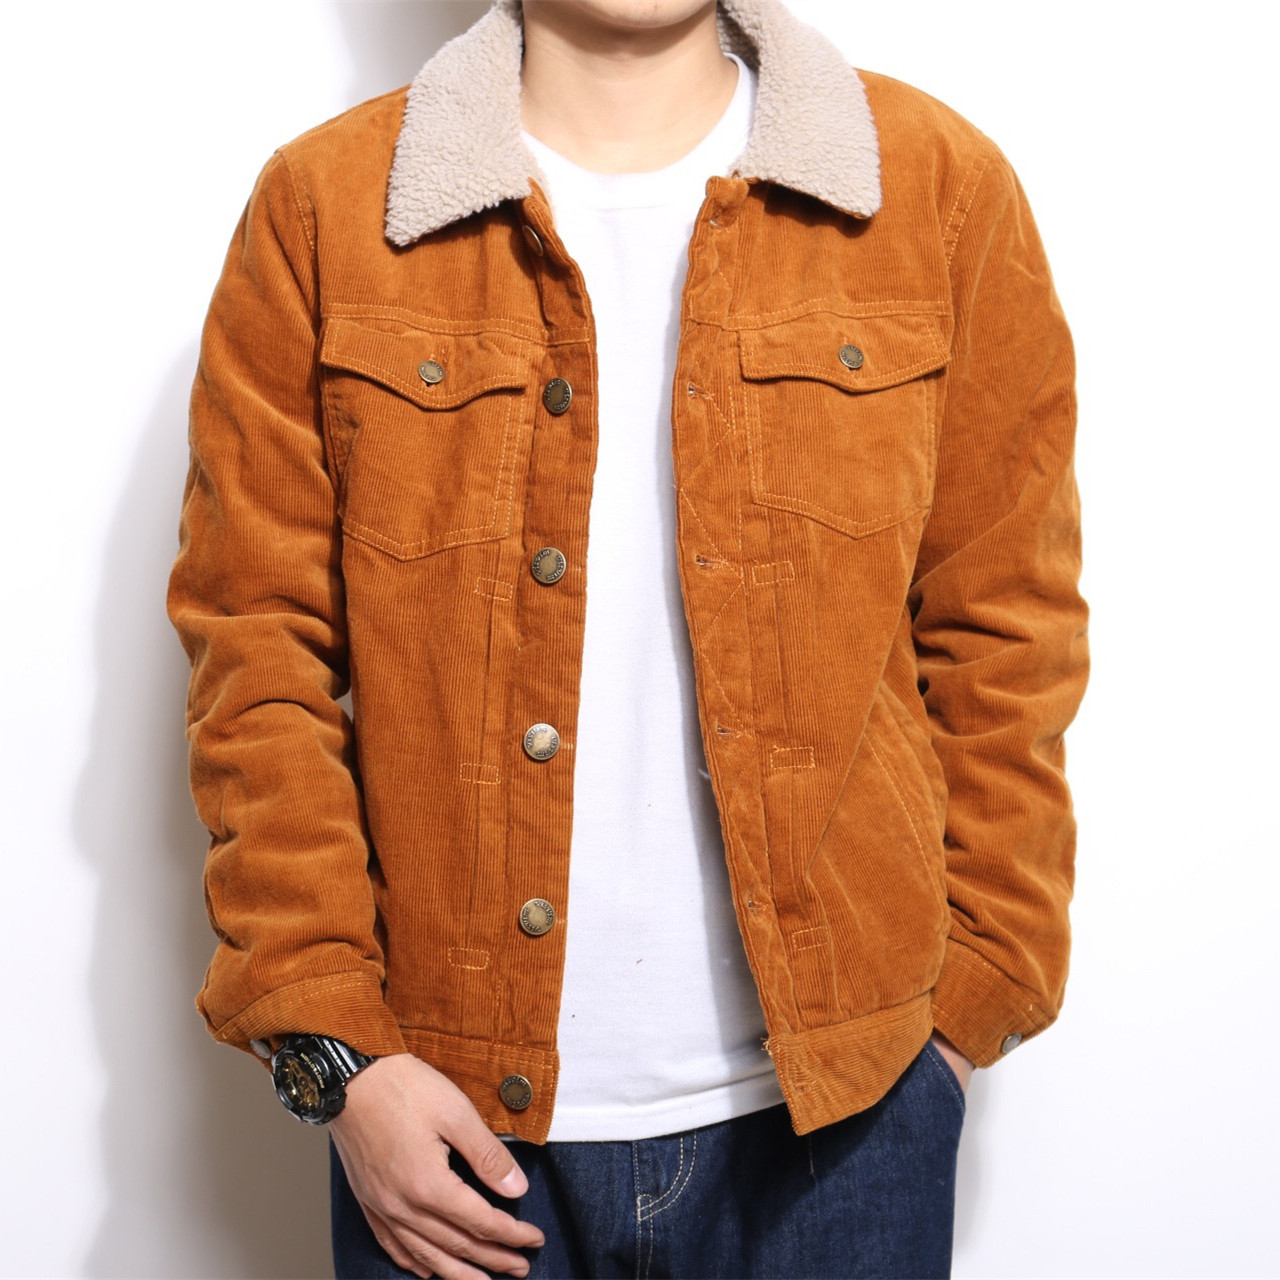 HOO 2020 Men 's Handsome Corduroy Trend Jacket Youth Casual Lapel Lamb Dovetail Denim Jacket In The Spring